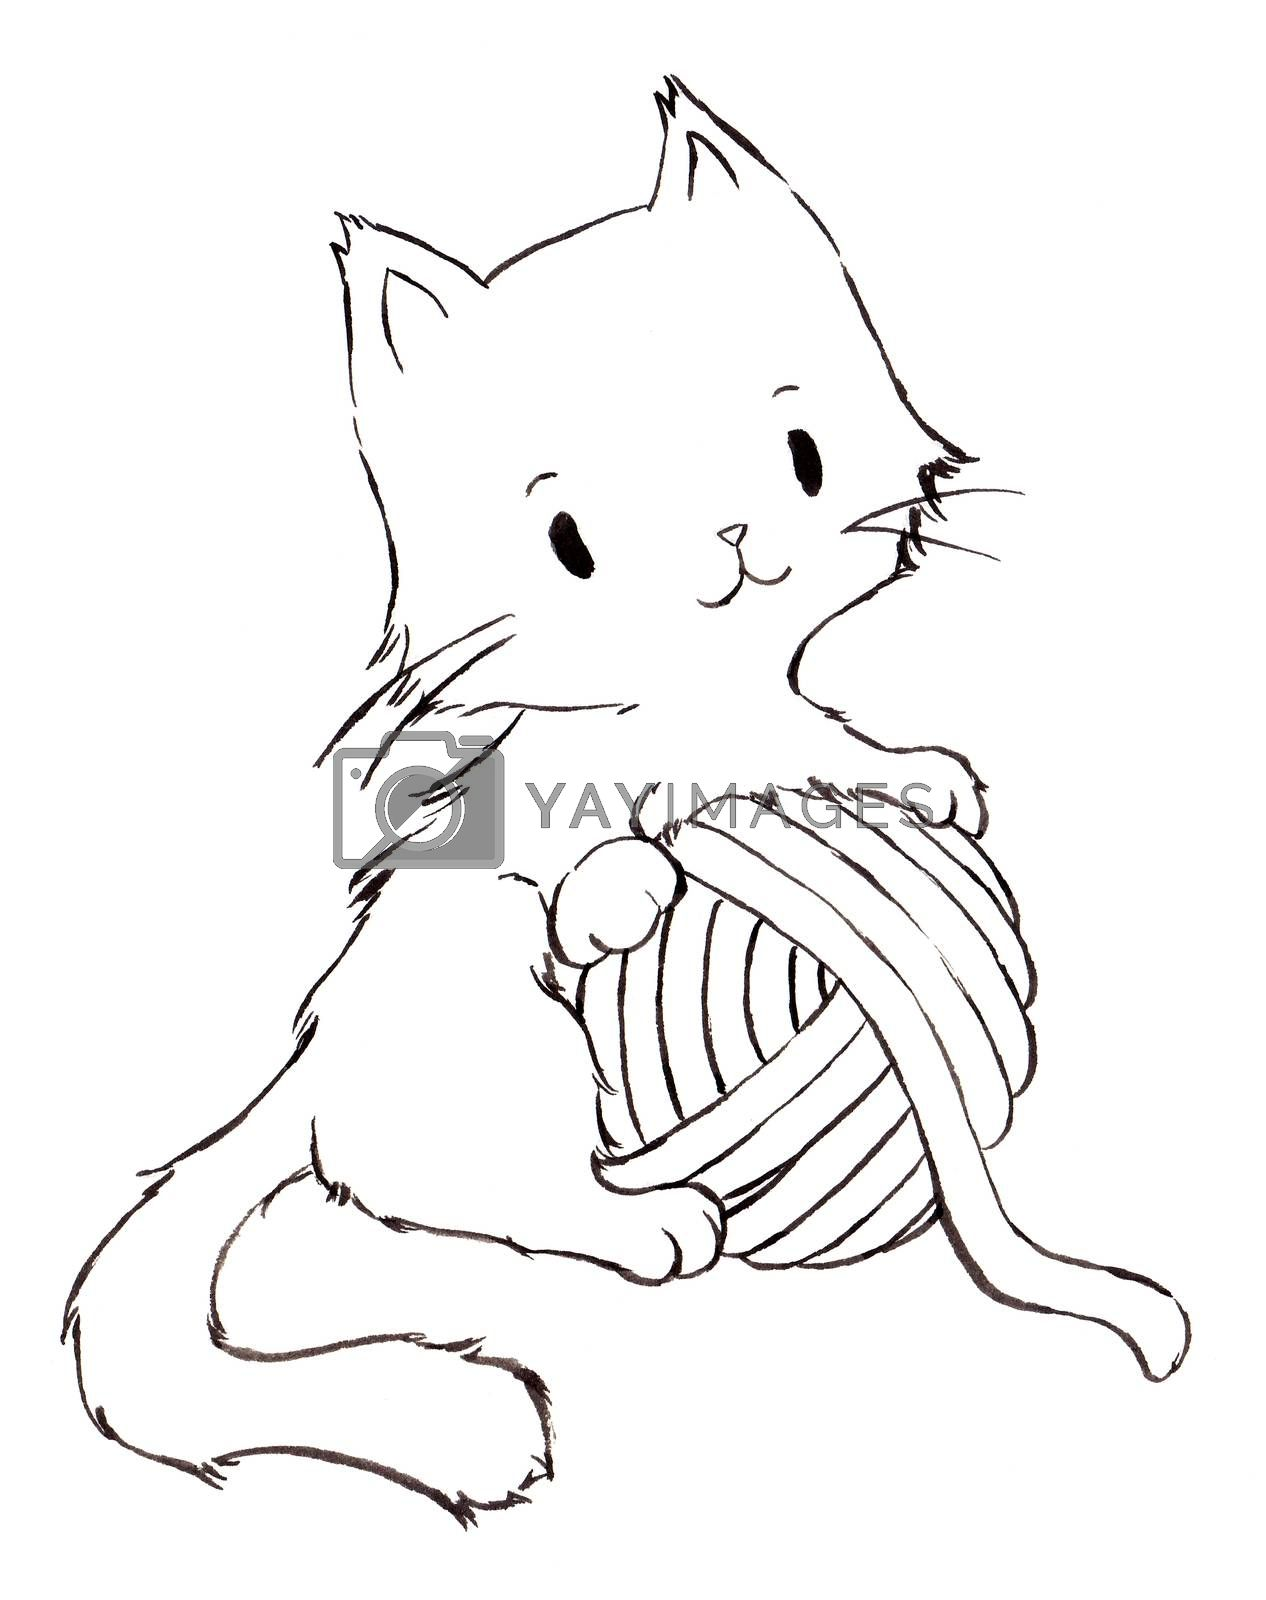 Fluffy kittens hugging yarn ball. Line art cartoon character black ink hand painting for decoration in pet artwork advertising, coloring book, textbook for small children.